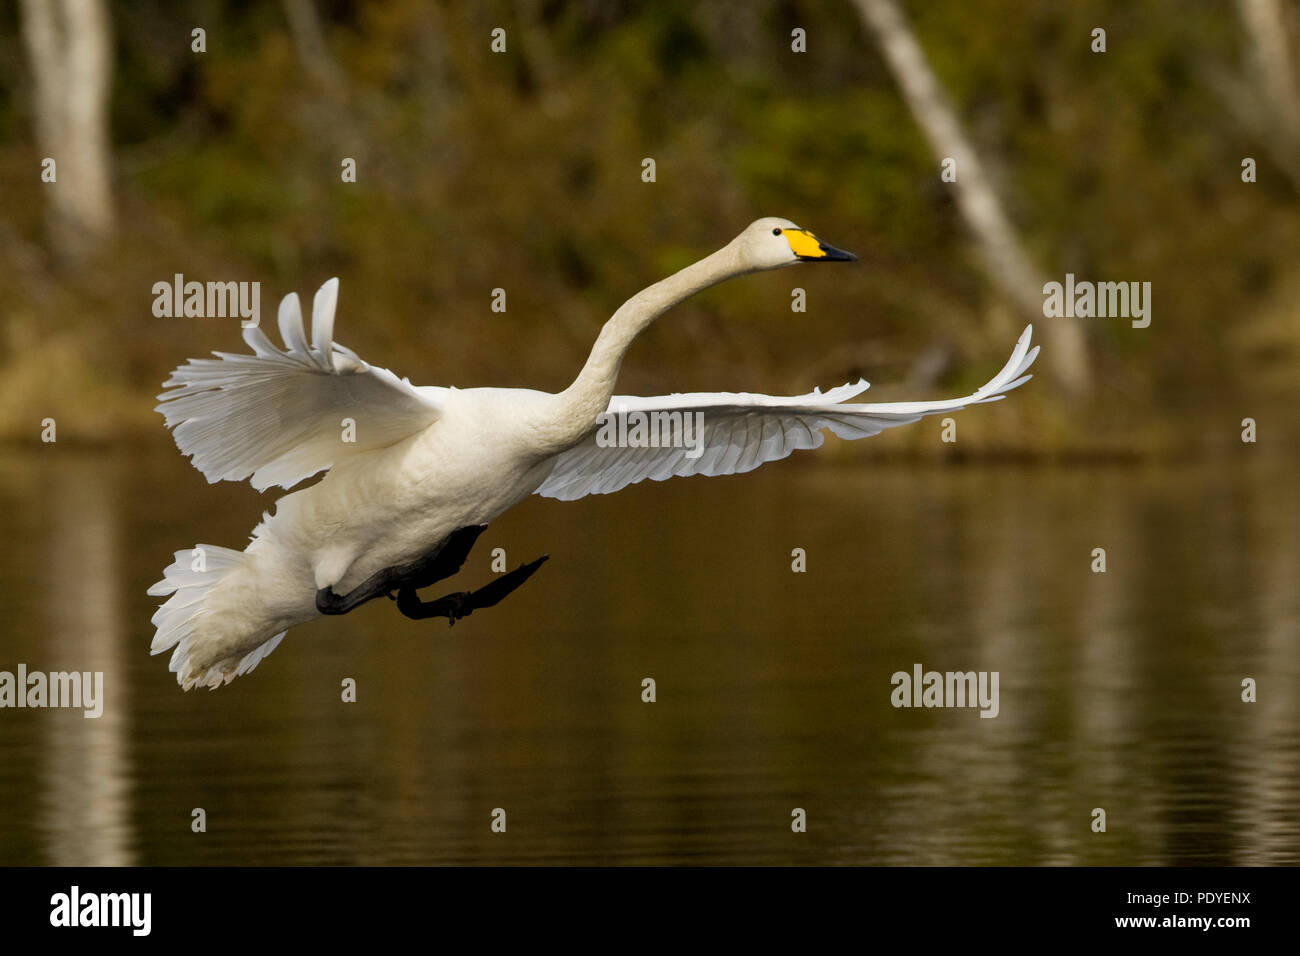 Wilde zwaan met aanzet tot landing op het water.Whooper Swan starting to make a landing on the water. - Stock Image